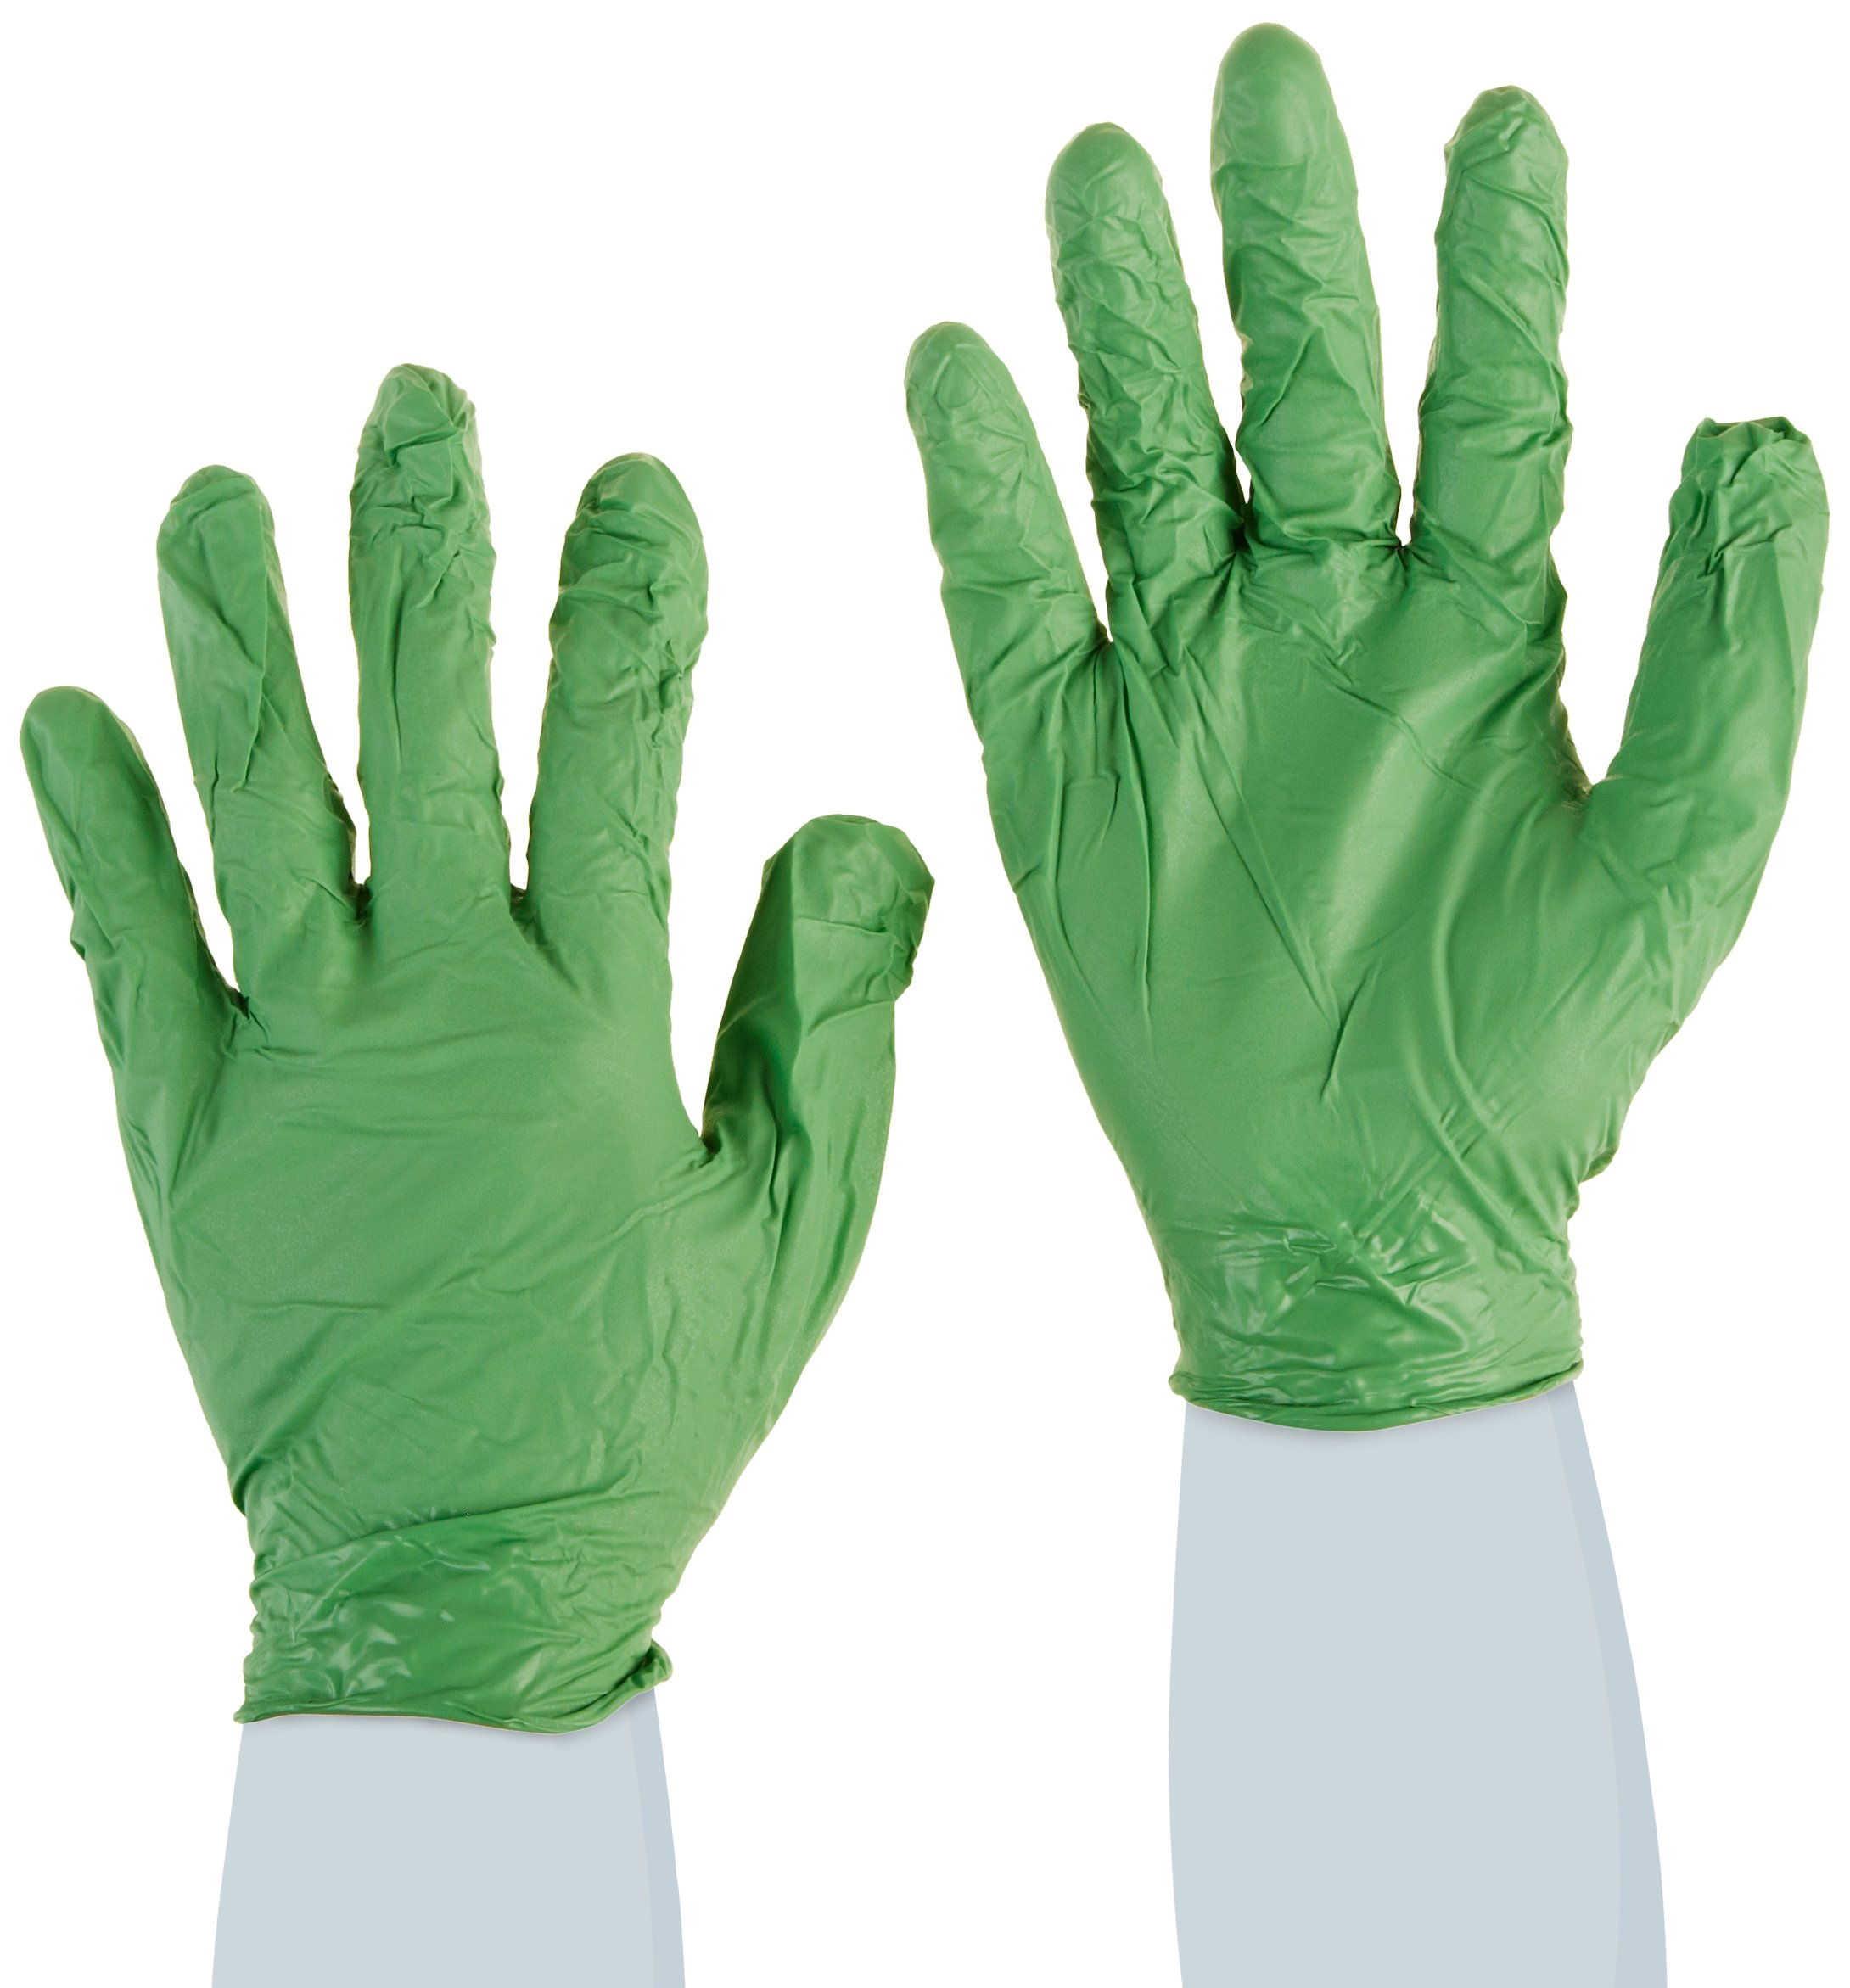 Showa Best 6105PFXL GreeN-DEX Biodegradable Industrial Grade Nitrile Glove, Disposable, Powder Free, 4 mil Thickness, 9-1/2'' Length, X-Large, Green (Pack of 100)